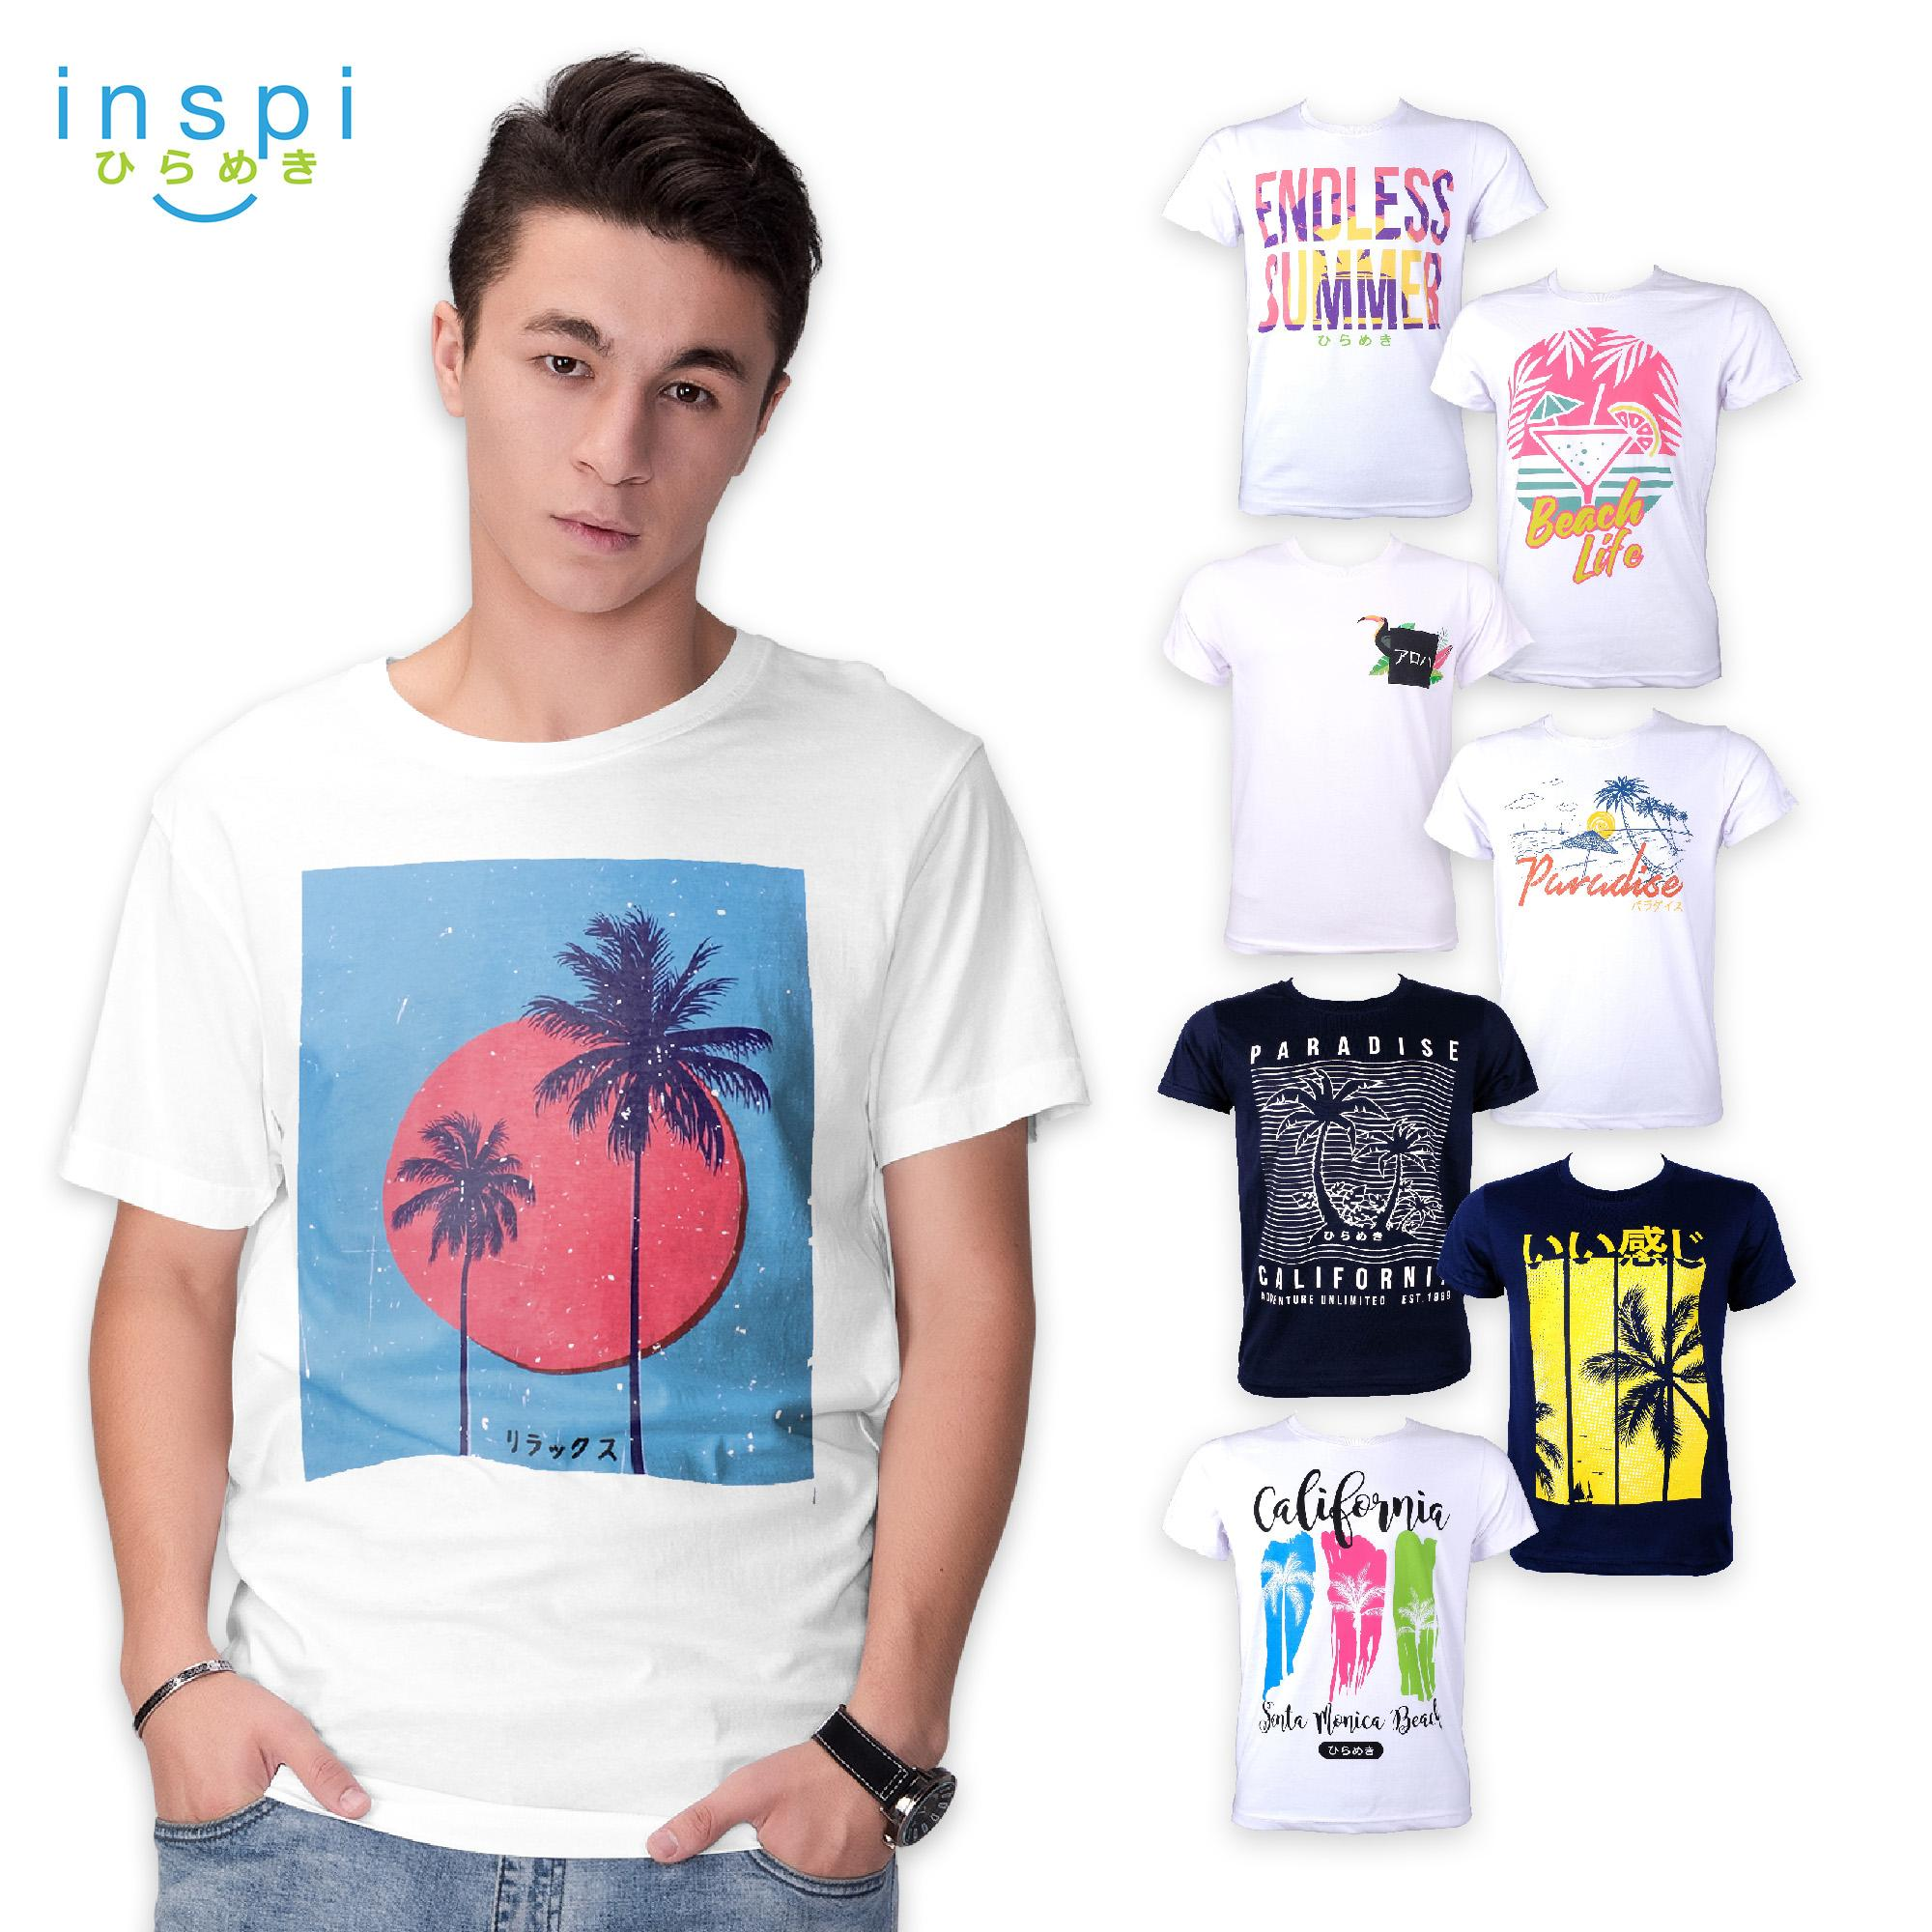 23745527d00 INSPI Tees Summer Collection tshirt printed graphic tee Mens t shirt shirts  for men tshirts sale